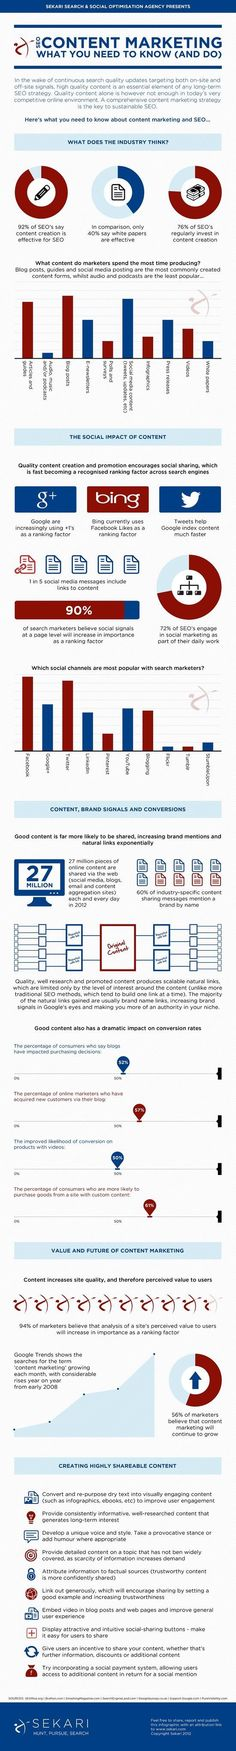 SEO Content Marketing #Infographic - What You Need to Know and Do